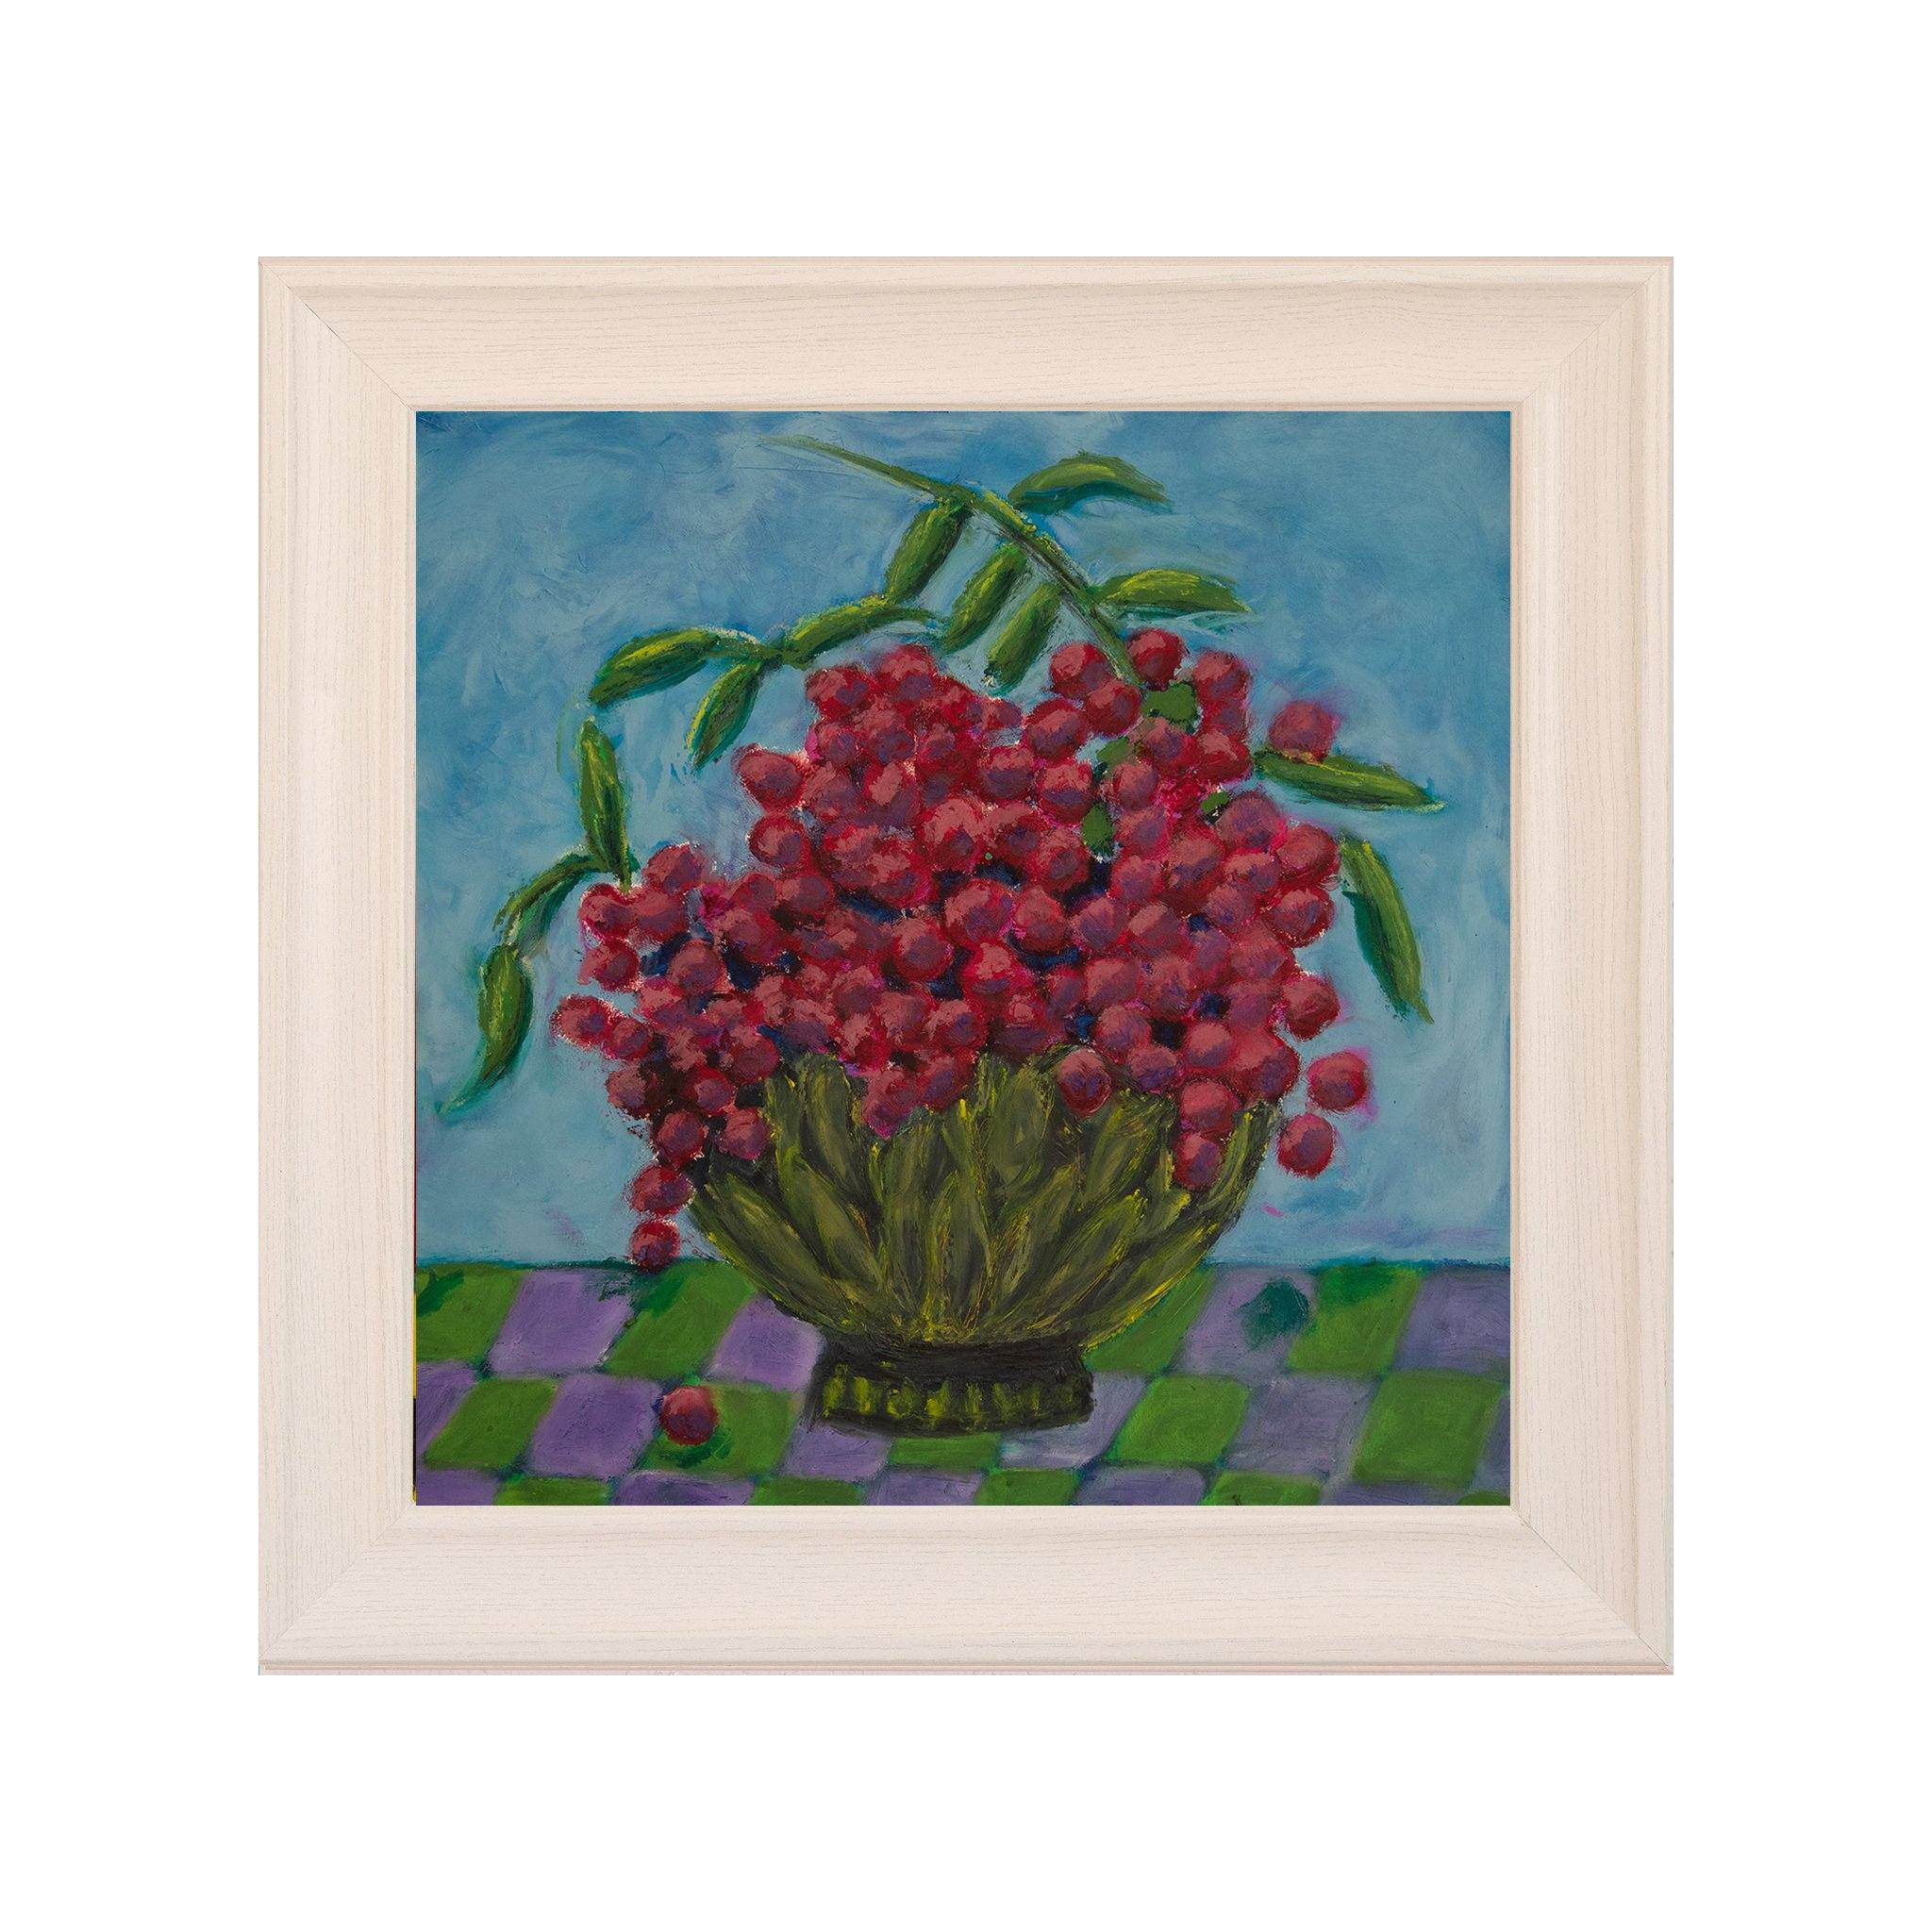 ART IN THE TIME OF CORONA: BOWL FULL OF GRAPES - Norlynne Coar Fine Art